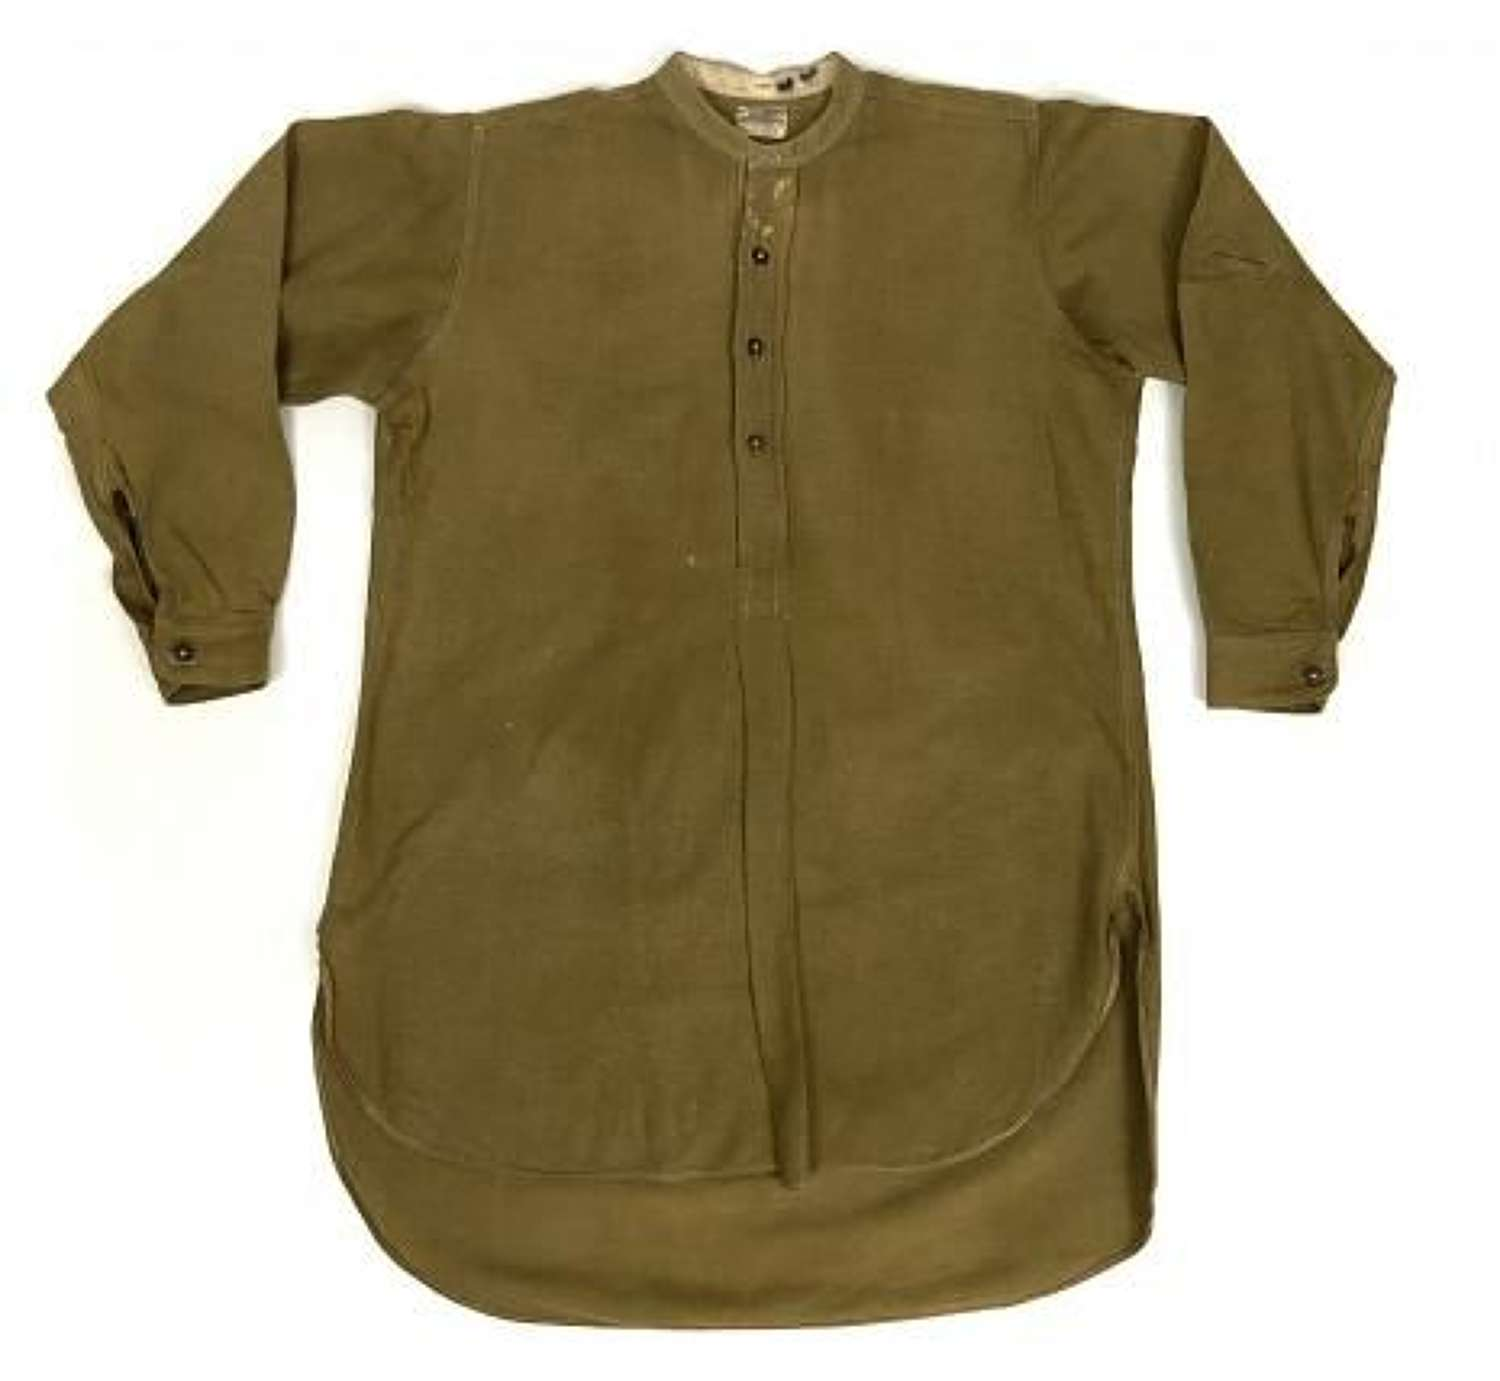 Original WW2 British Army Officers Collarless Shirt + Collars by 'W. M. Anderson & Sons Ltd'